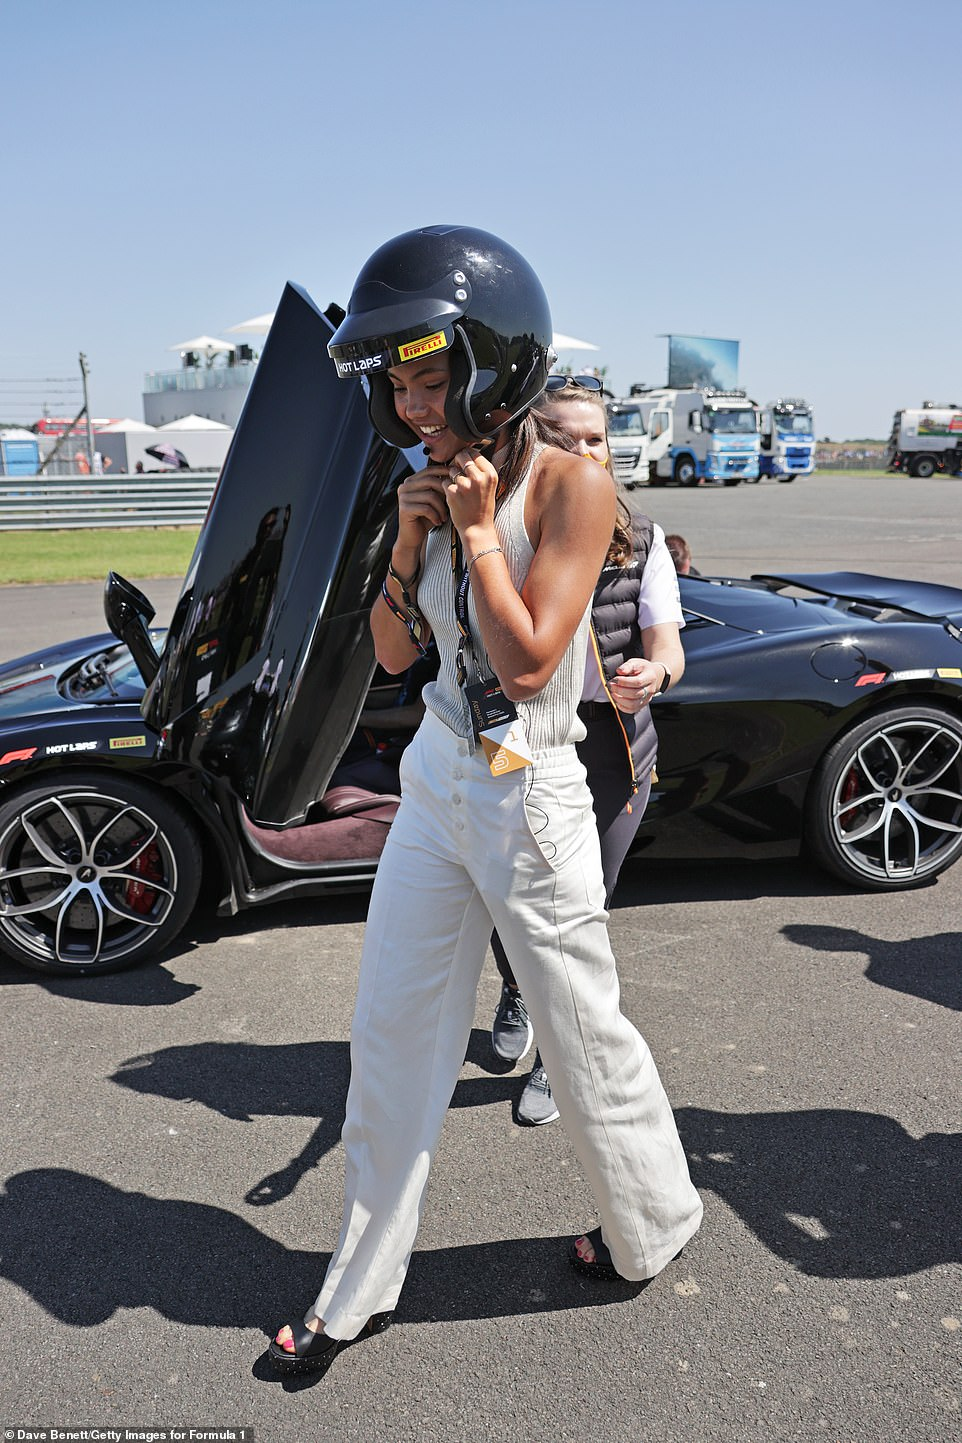 Having fun! On her feet, she wore a pair of chunky black heels and could also be seen with a pair of sunglasses on her head